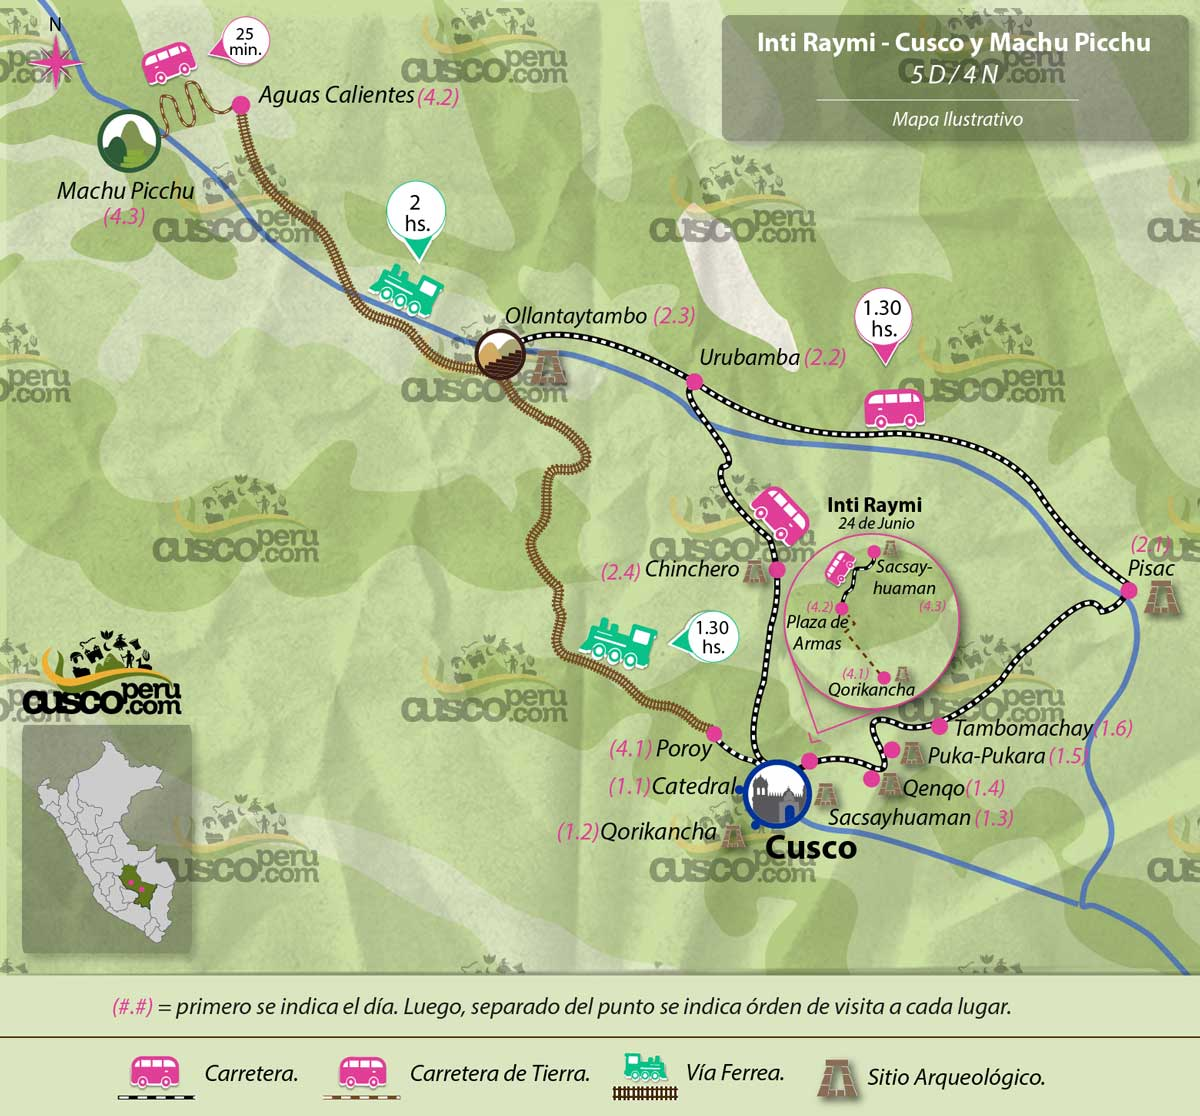 map Inti Raymi ceremony Cusco & Machu picchu Tour of 5 days